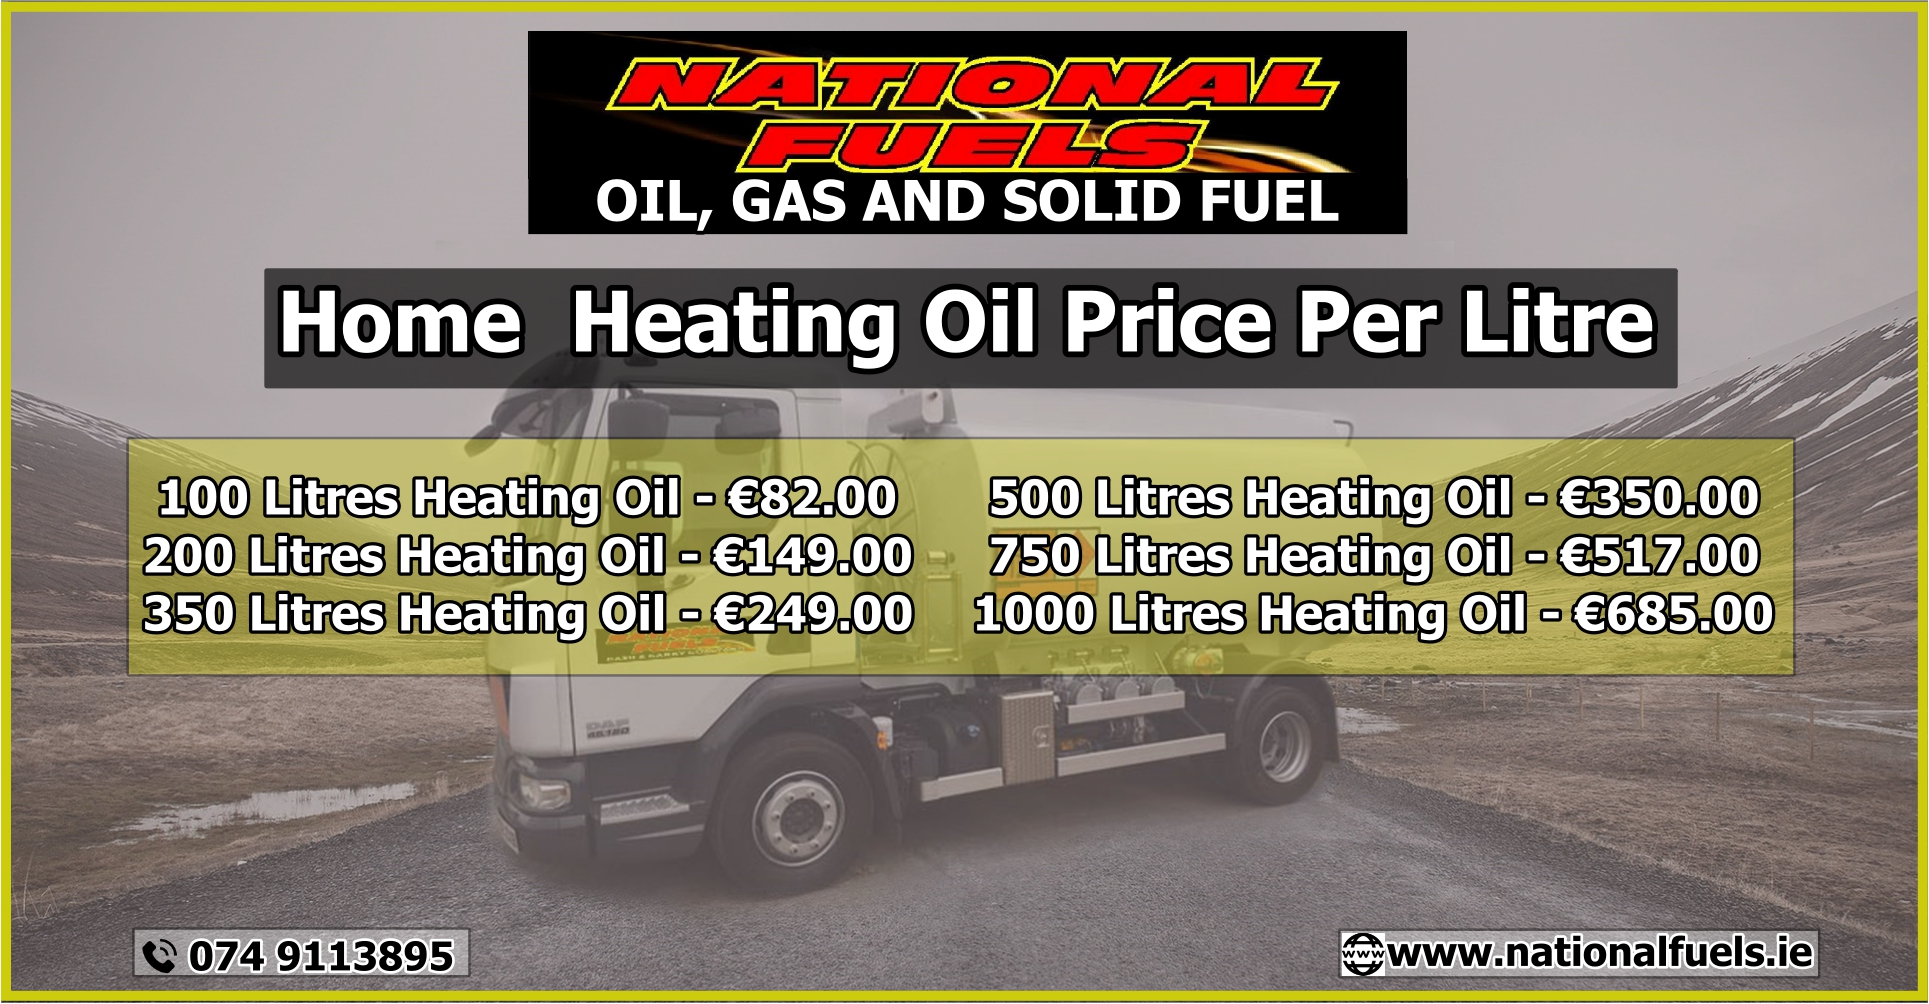 national fuels April.jpg